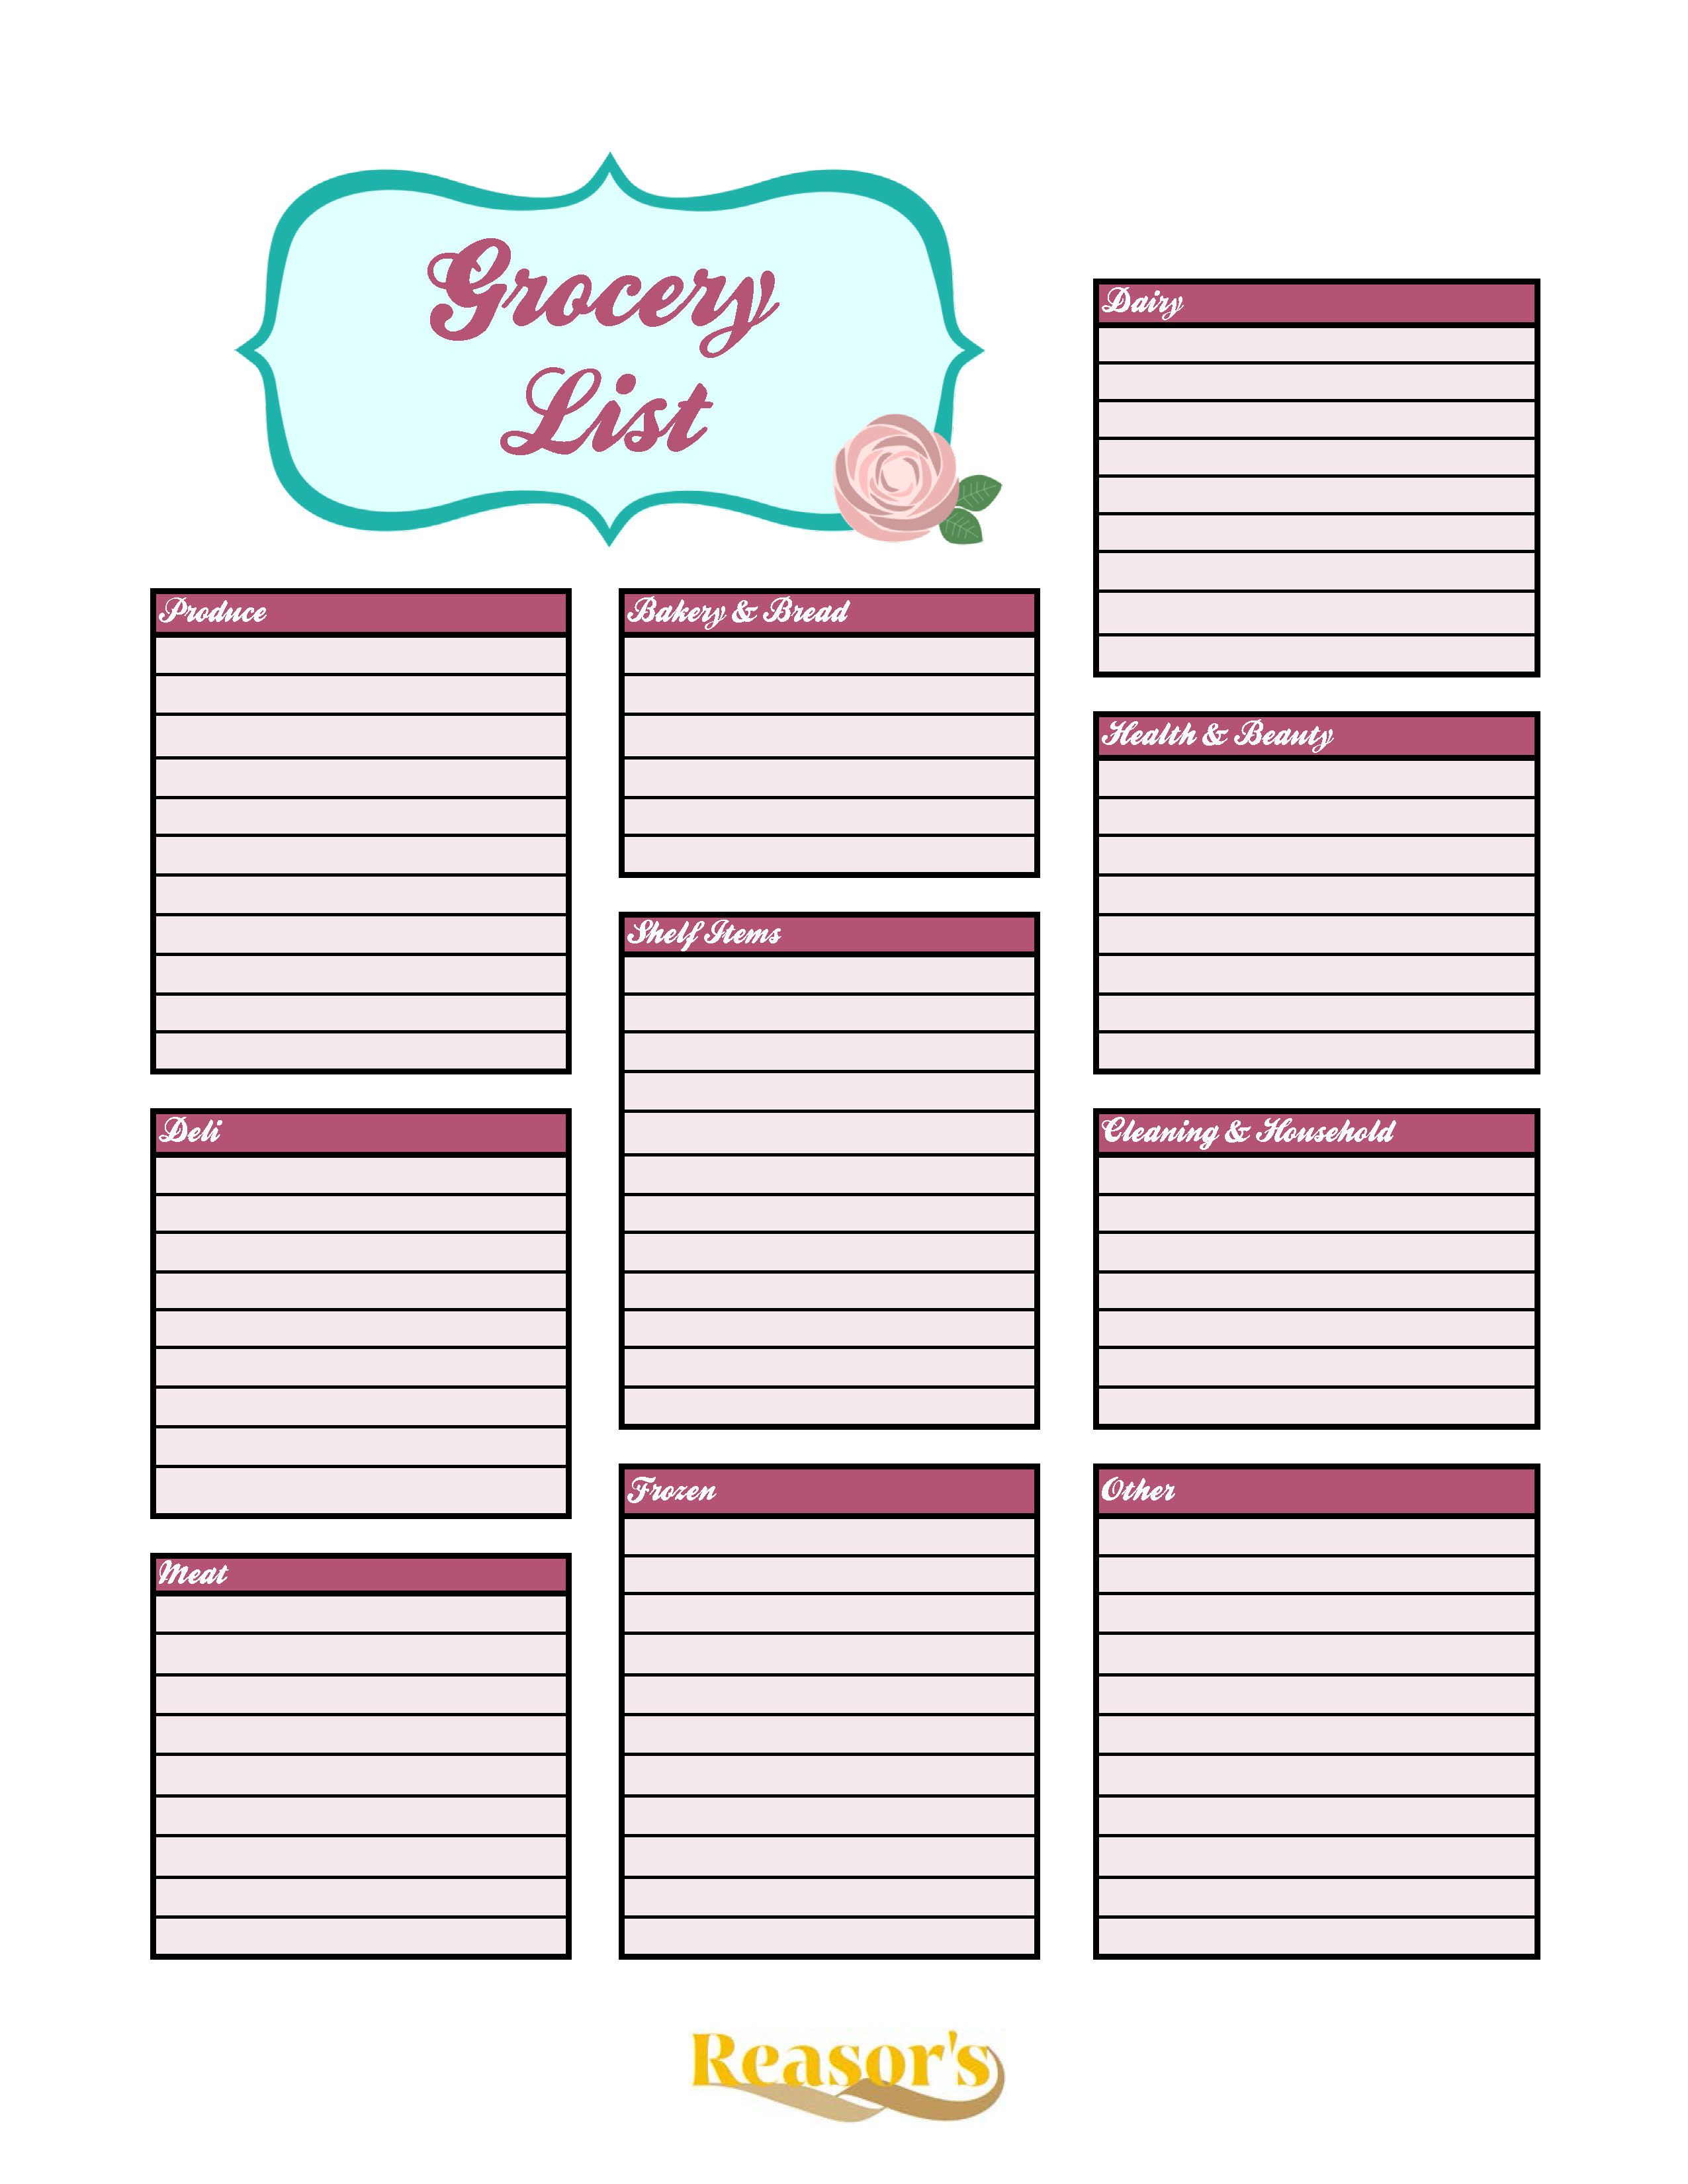 Make Shopping Easier By Organizing Your Grocery List